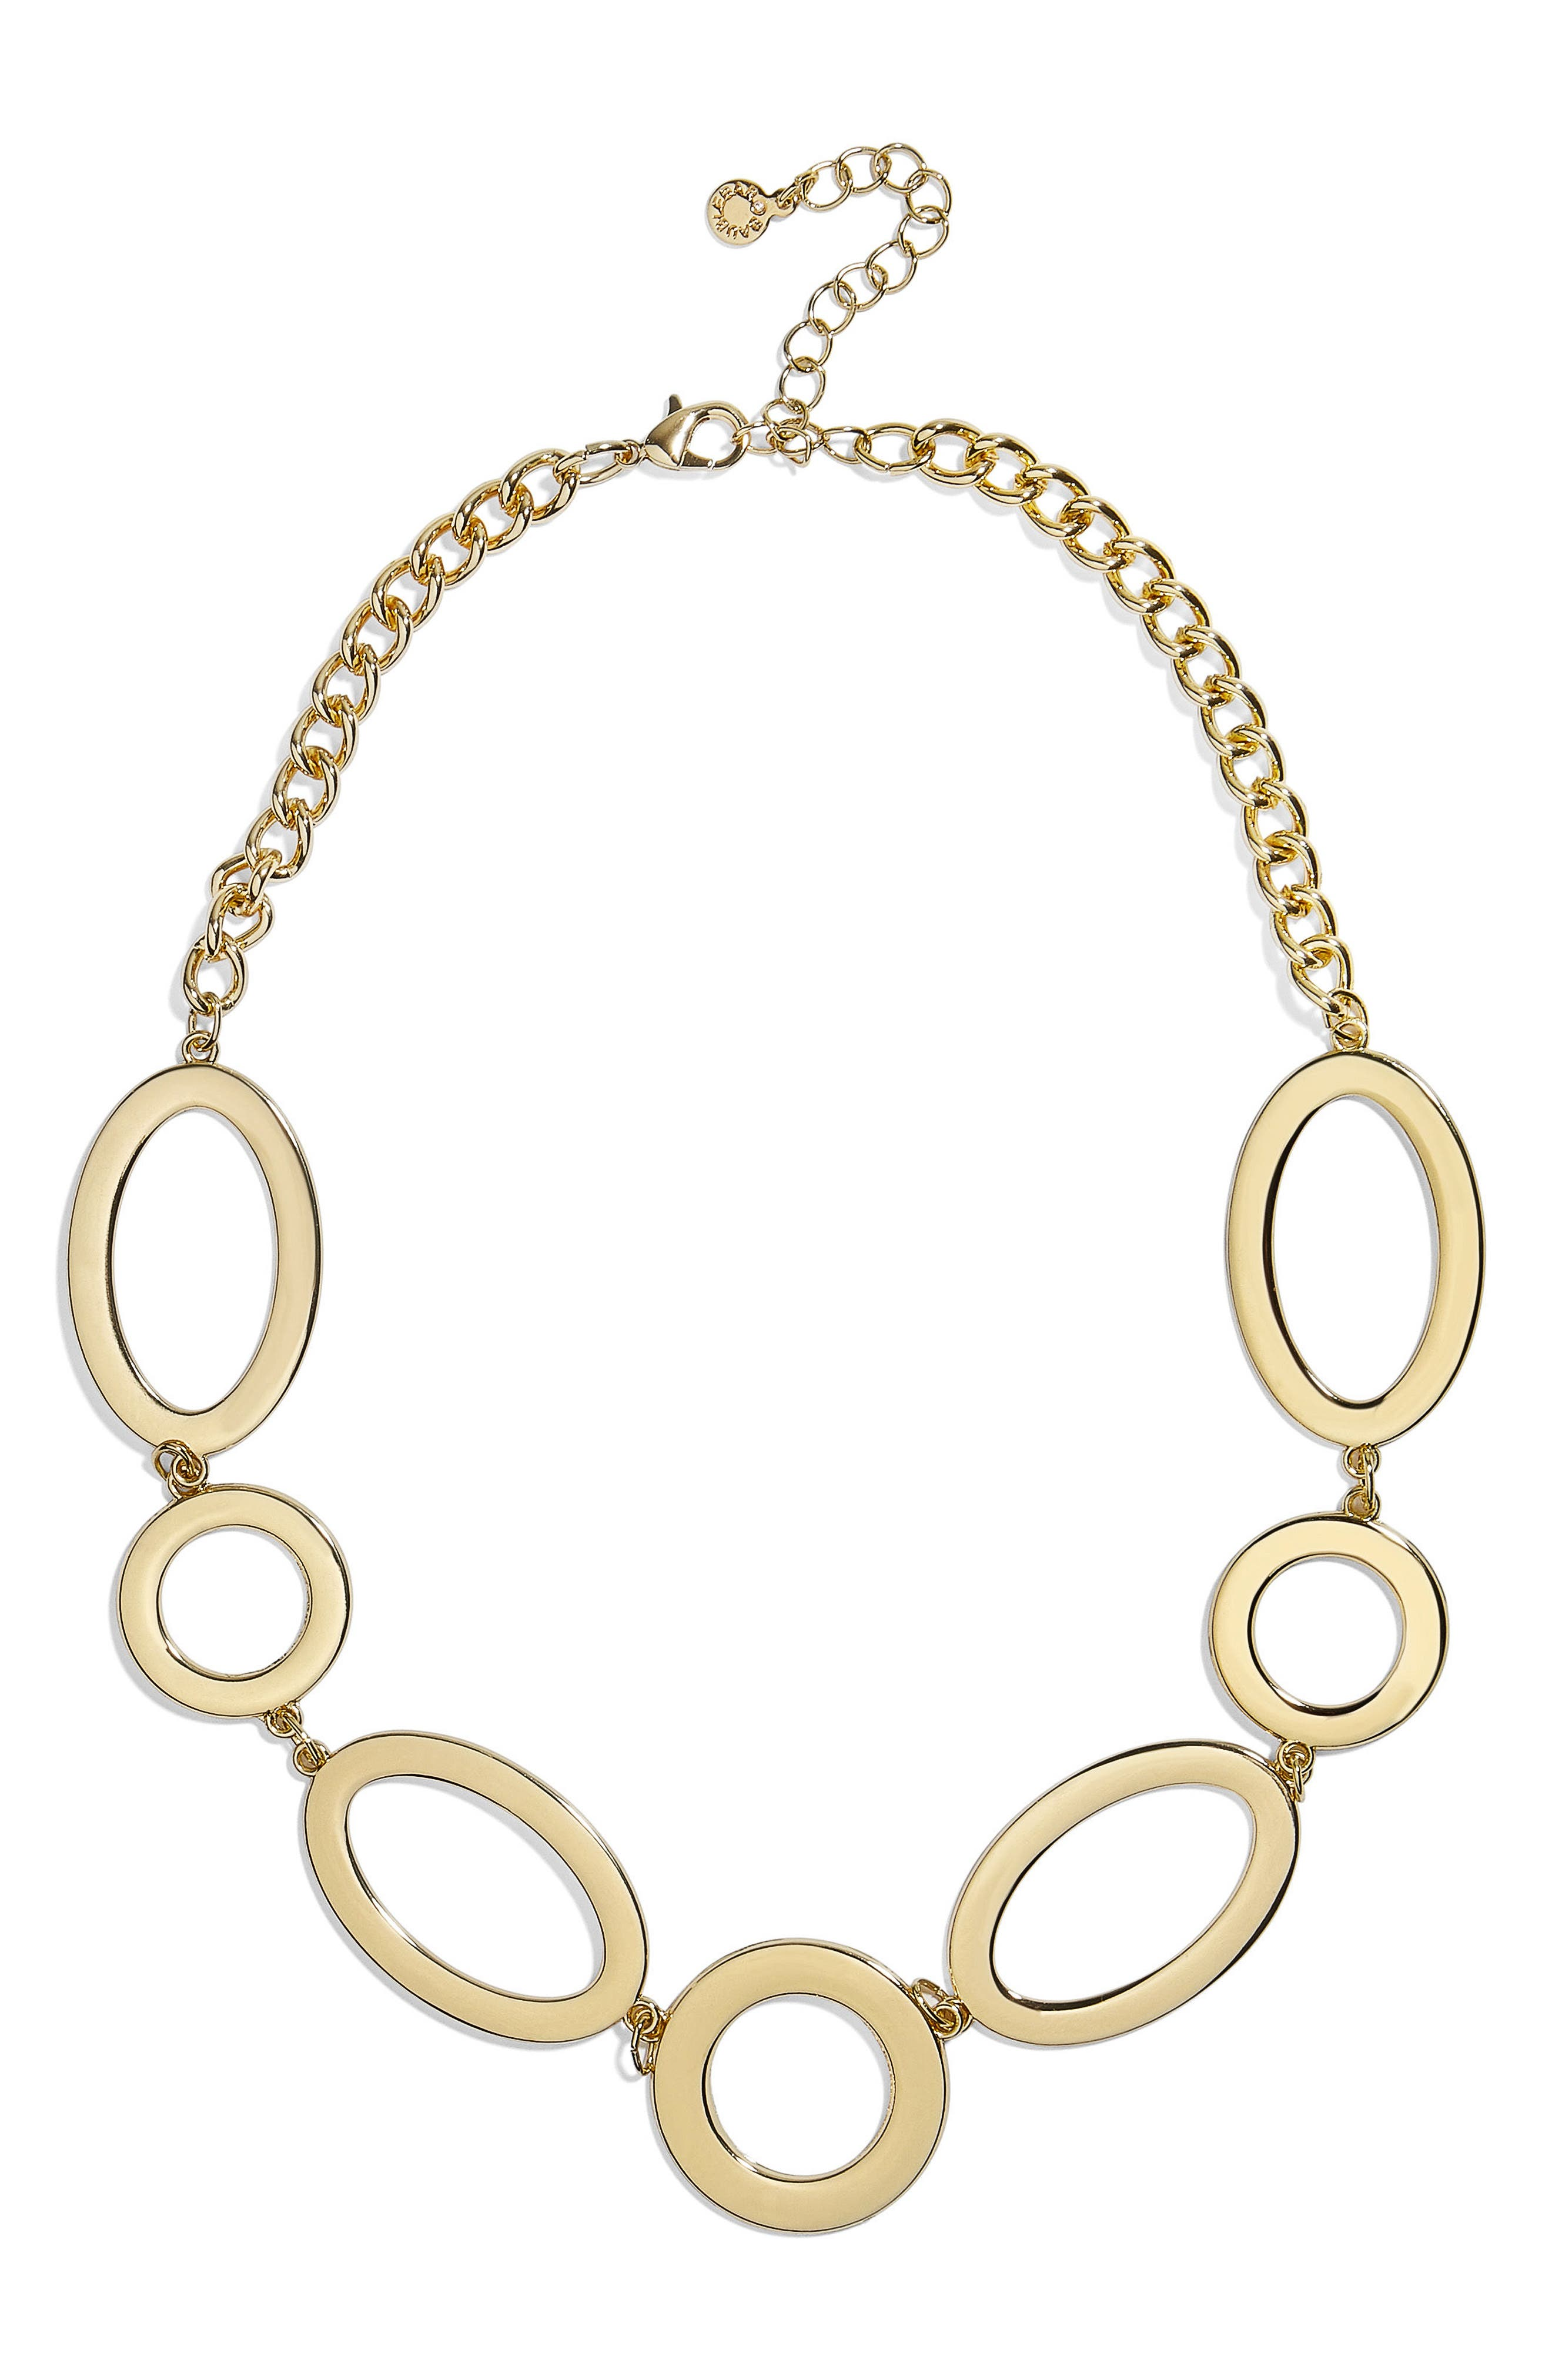 Romona Oval & Circle Statement Necklace,                         Main,                         color, 710